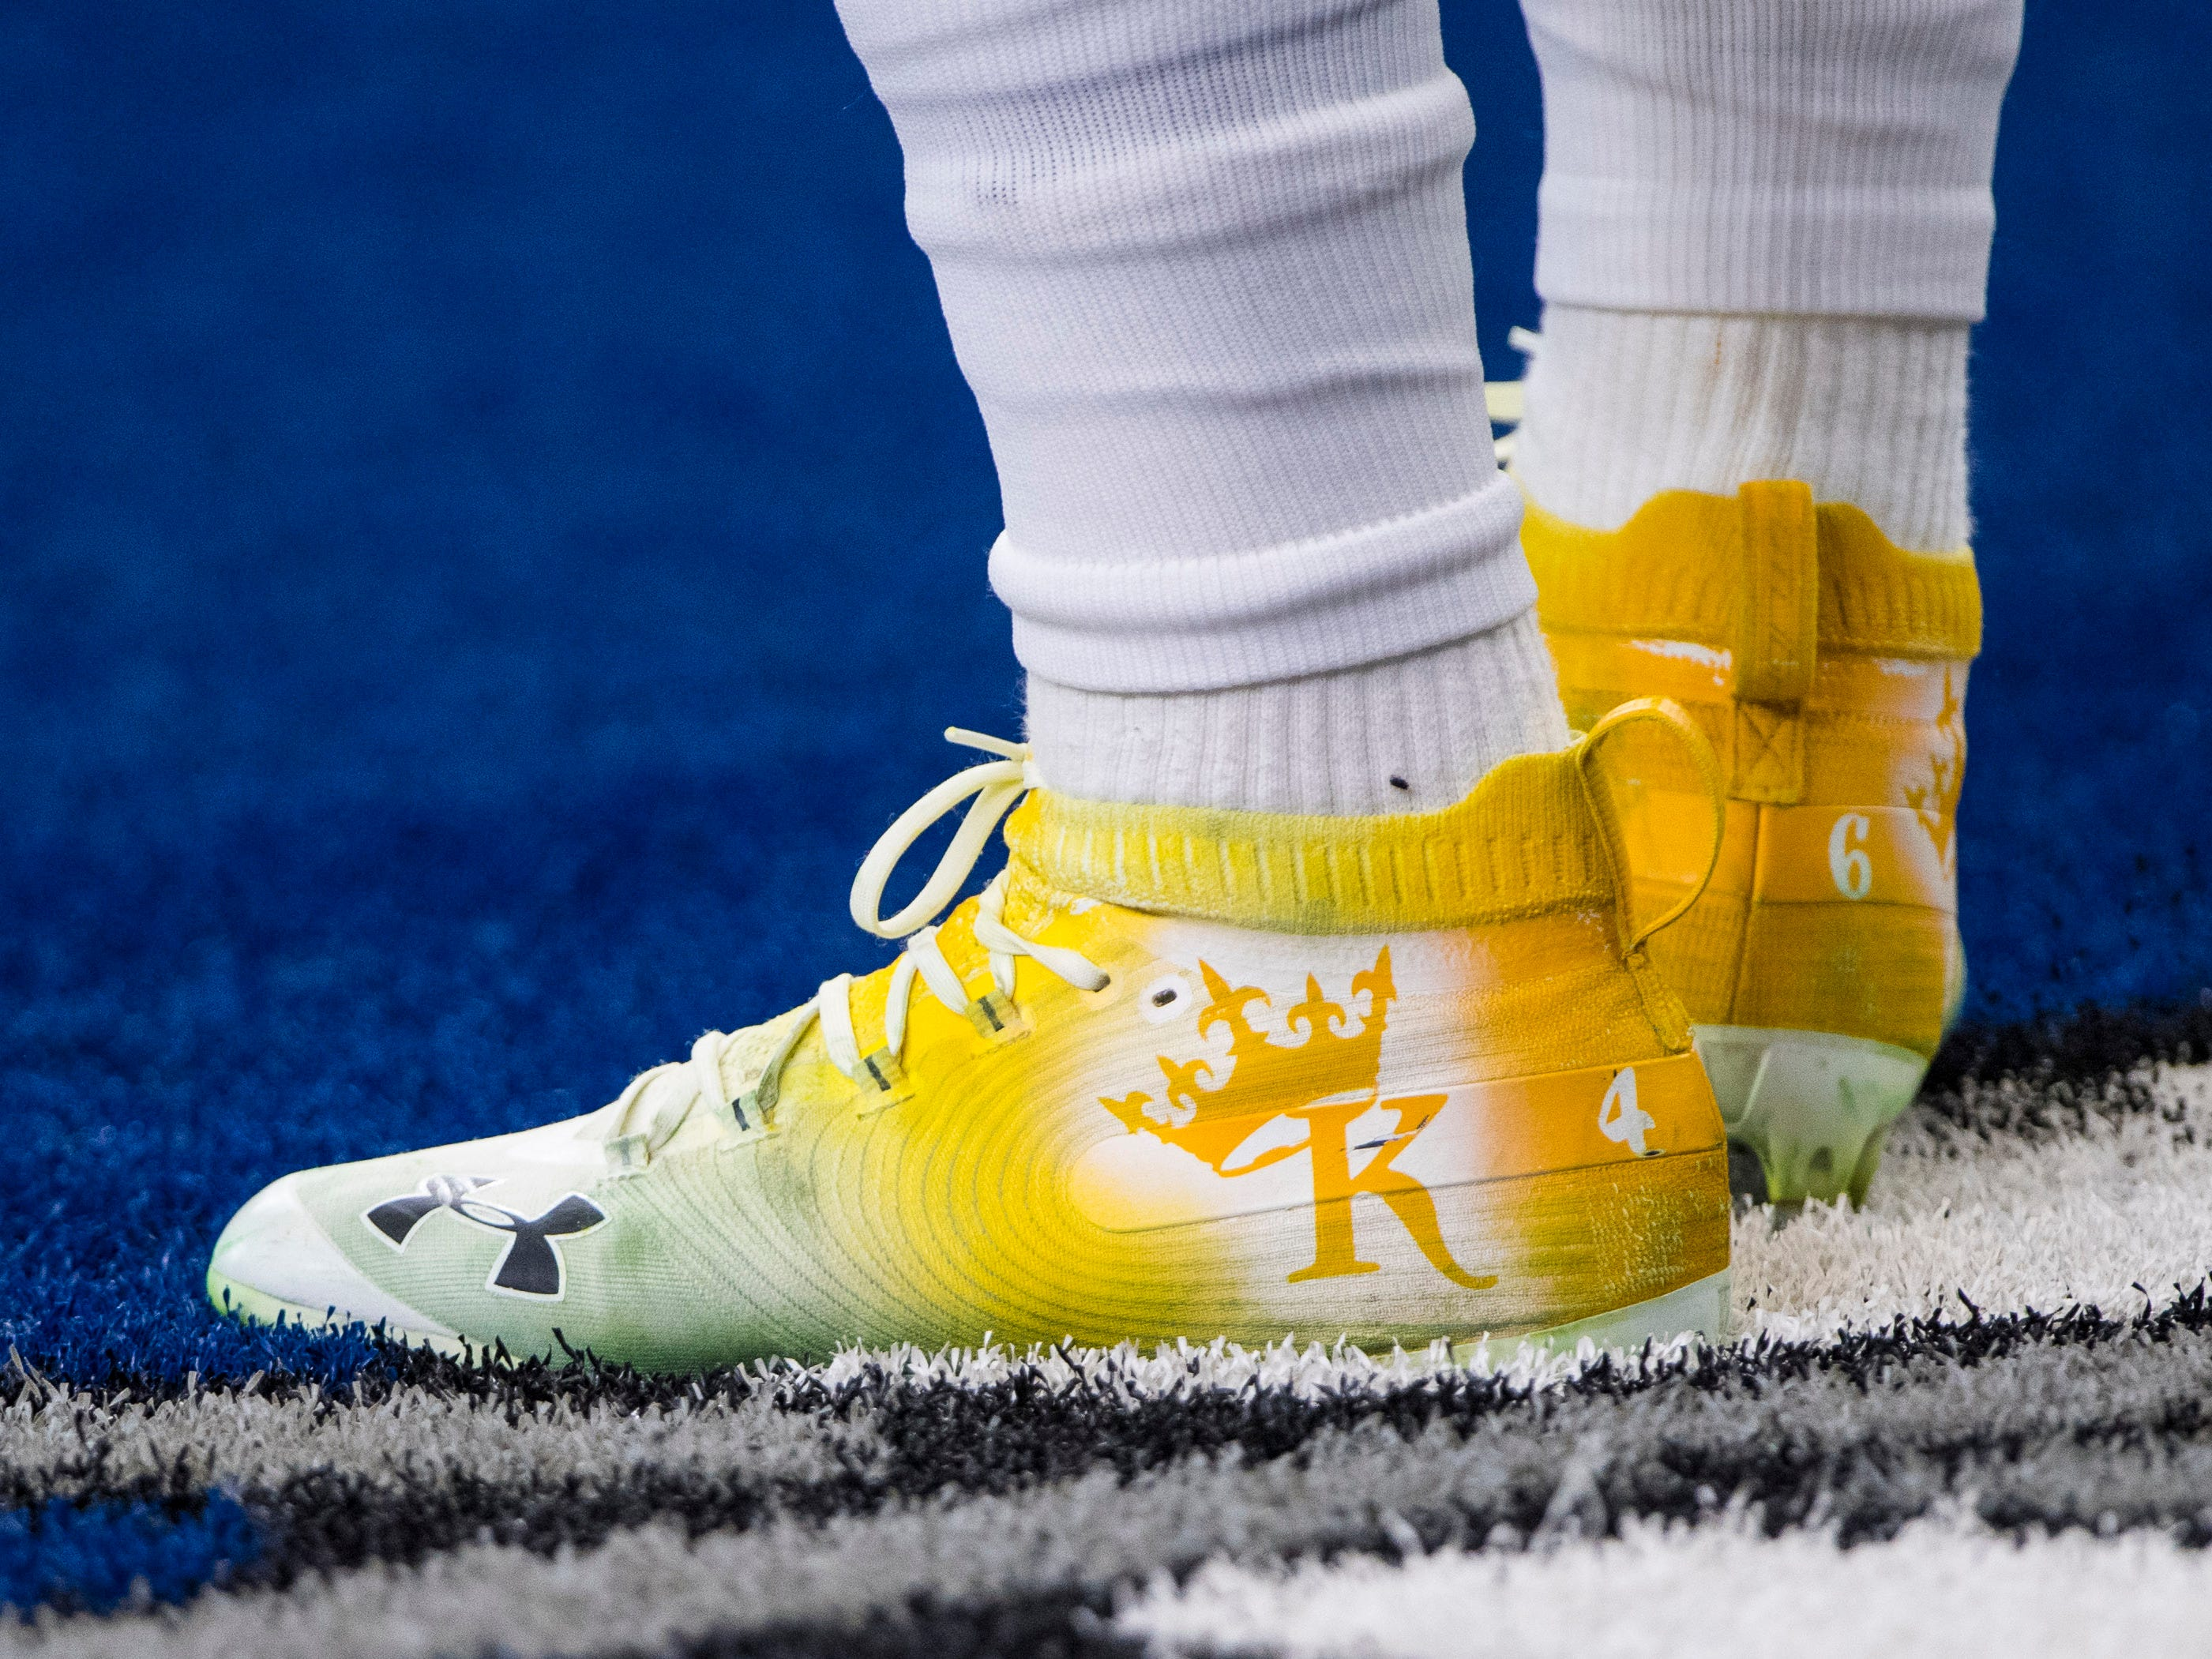 A view of the shoes of Washington Redskins running back Kapri Bibbs (46) as he warms up before the game against the Dallas Cowboys at AT&T Stadium.